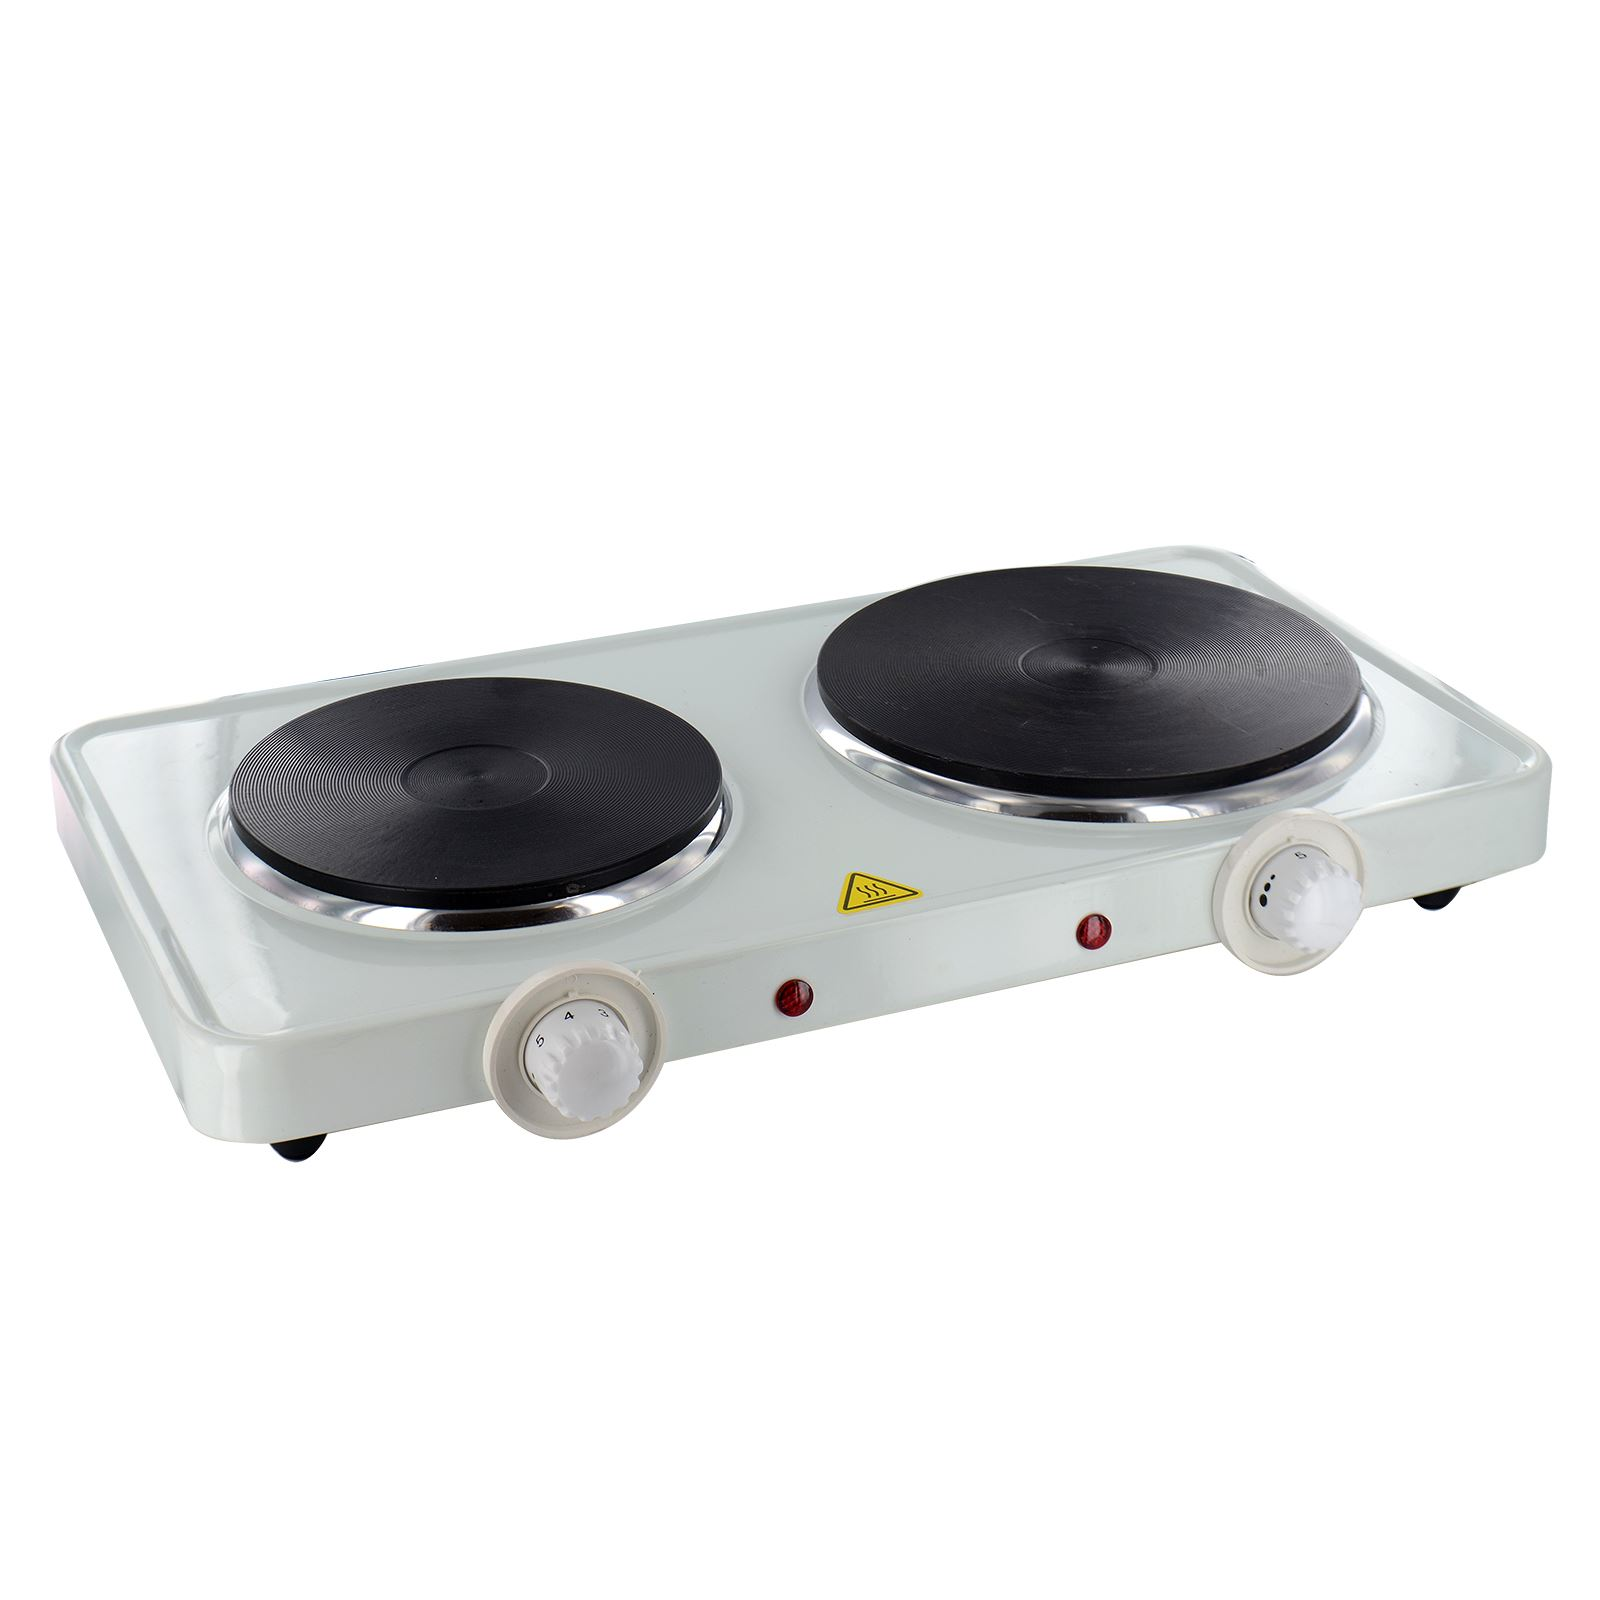 new double electric hotplate hob portable table top cooker camping caravan stove ebay. Black Bedroom Furniture Sets. Home Design Ideas